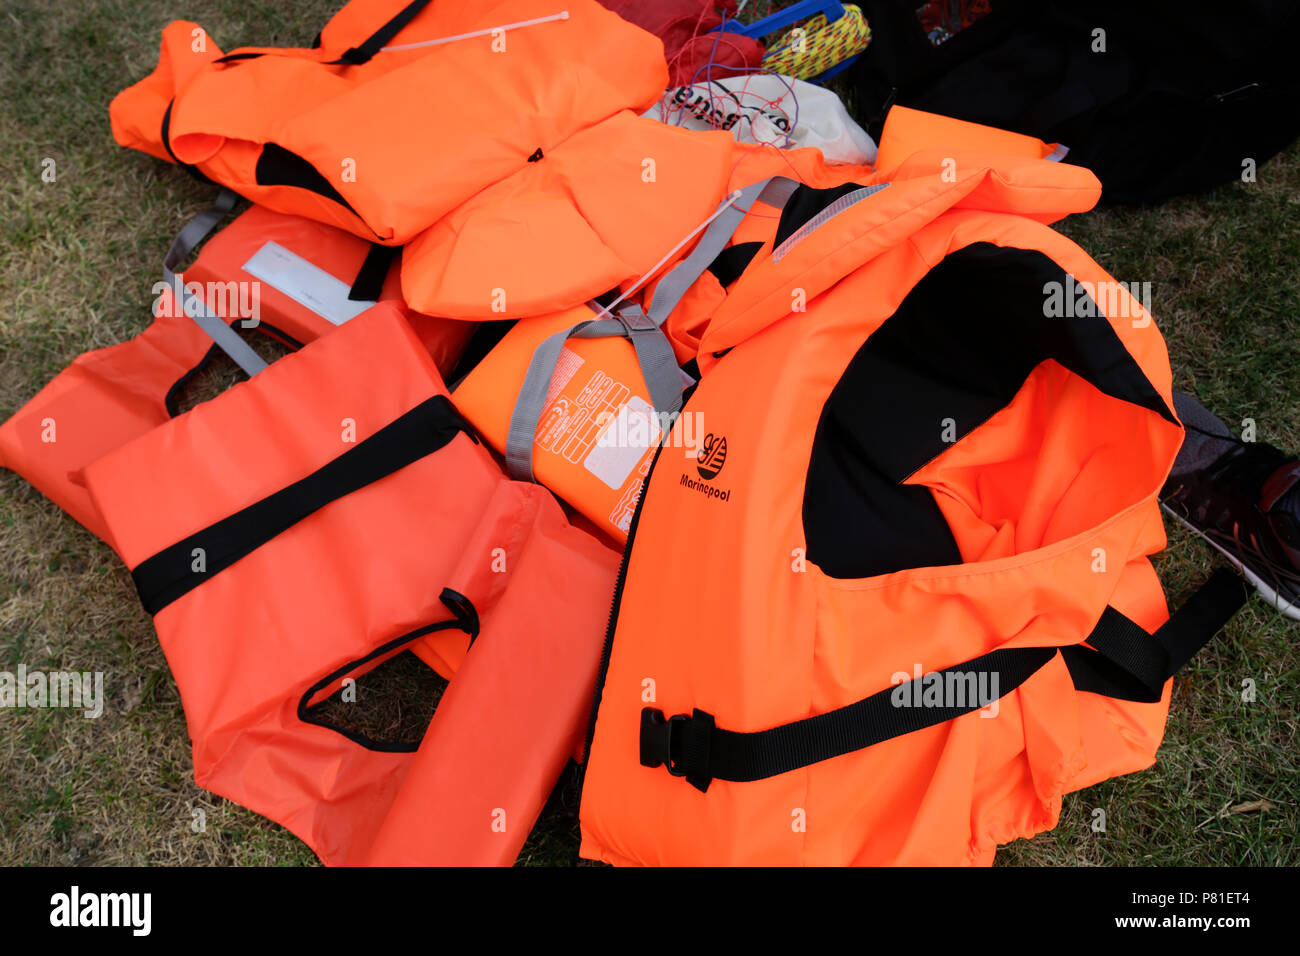 Frankfurt, Germany. 07th July, 2018. A pile of life jackets lie on the floor. Around 800 protesters marched through Frankfurt to protest against the politics of the German government and the EU of closed borders and the prevention of sea rescue operations of NGOs, by grounding their ships in Malta, that causes refugees to drown in the Mediterranean. They called for the Mayor of Frankfurt to declare Frankfurt a safe haven city for refugees from the Mediterranean. The protest was part of the German wide Seebrucke (Sea bridge) protest that saw thousands of people protest in several German cities. Stock Photo